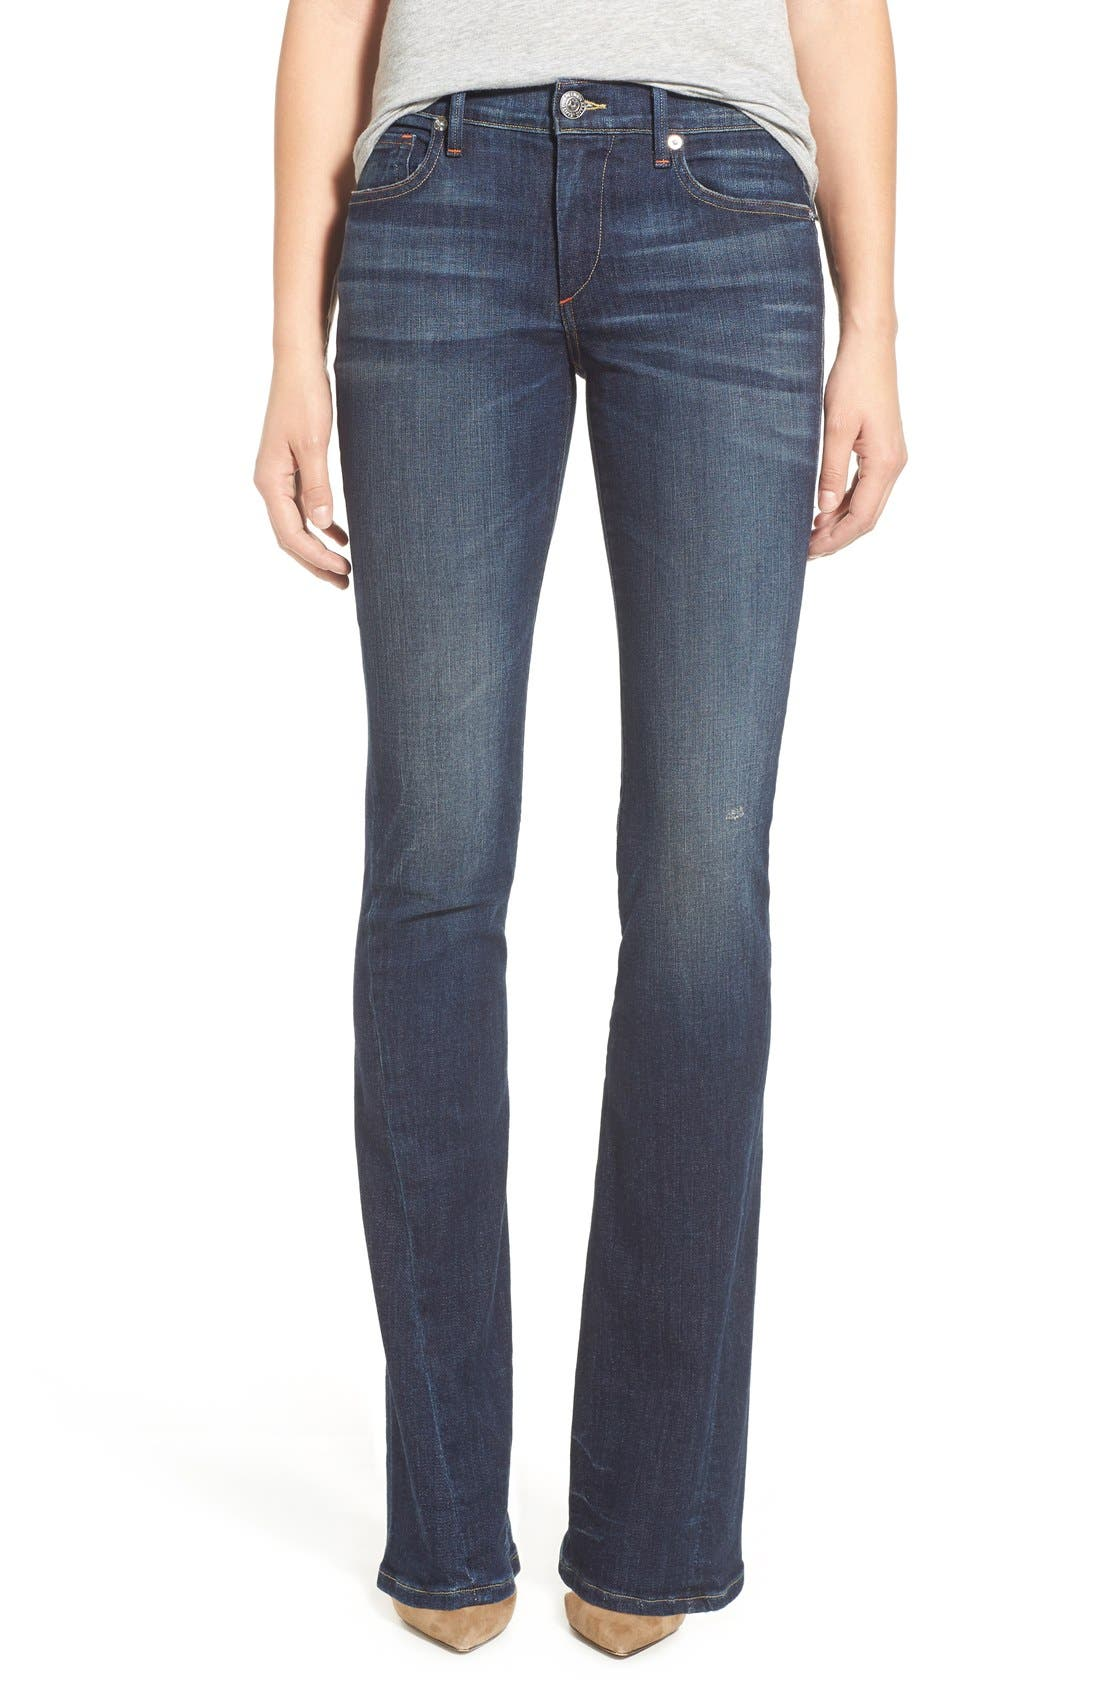 Alternate Image 1 Selected - True Religion Brand Jeans 'Becca' Twisted Seam Bootcut Jeans (Boyfriend Wash)